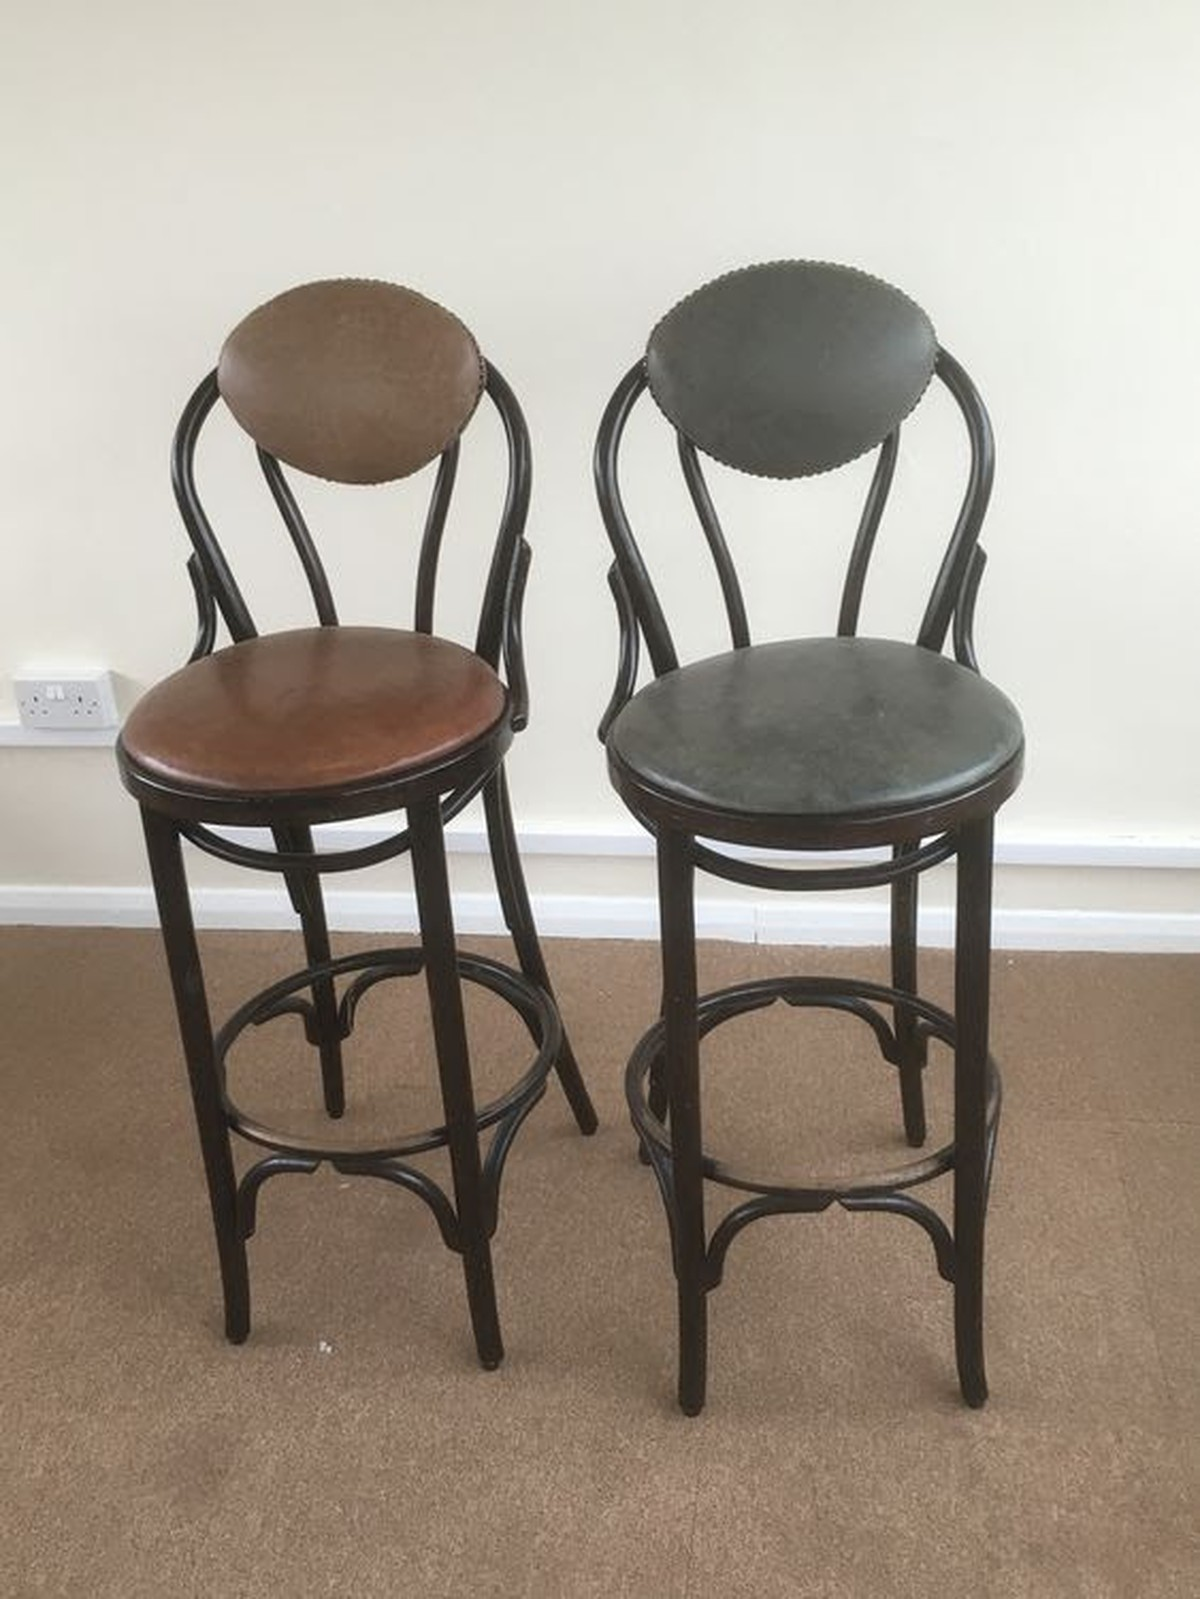 High Back Stools Secondhand Pub Equipment Bar Stools 9x Bentwood High